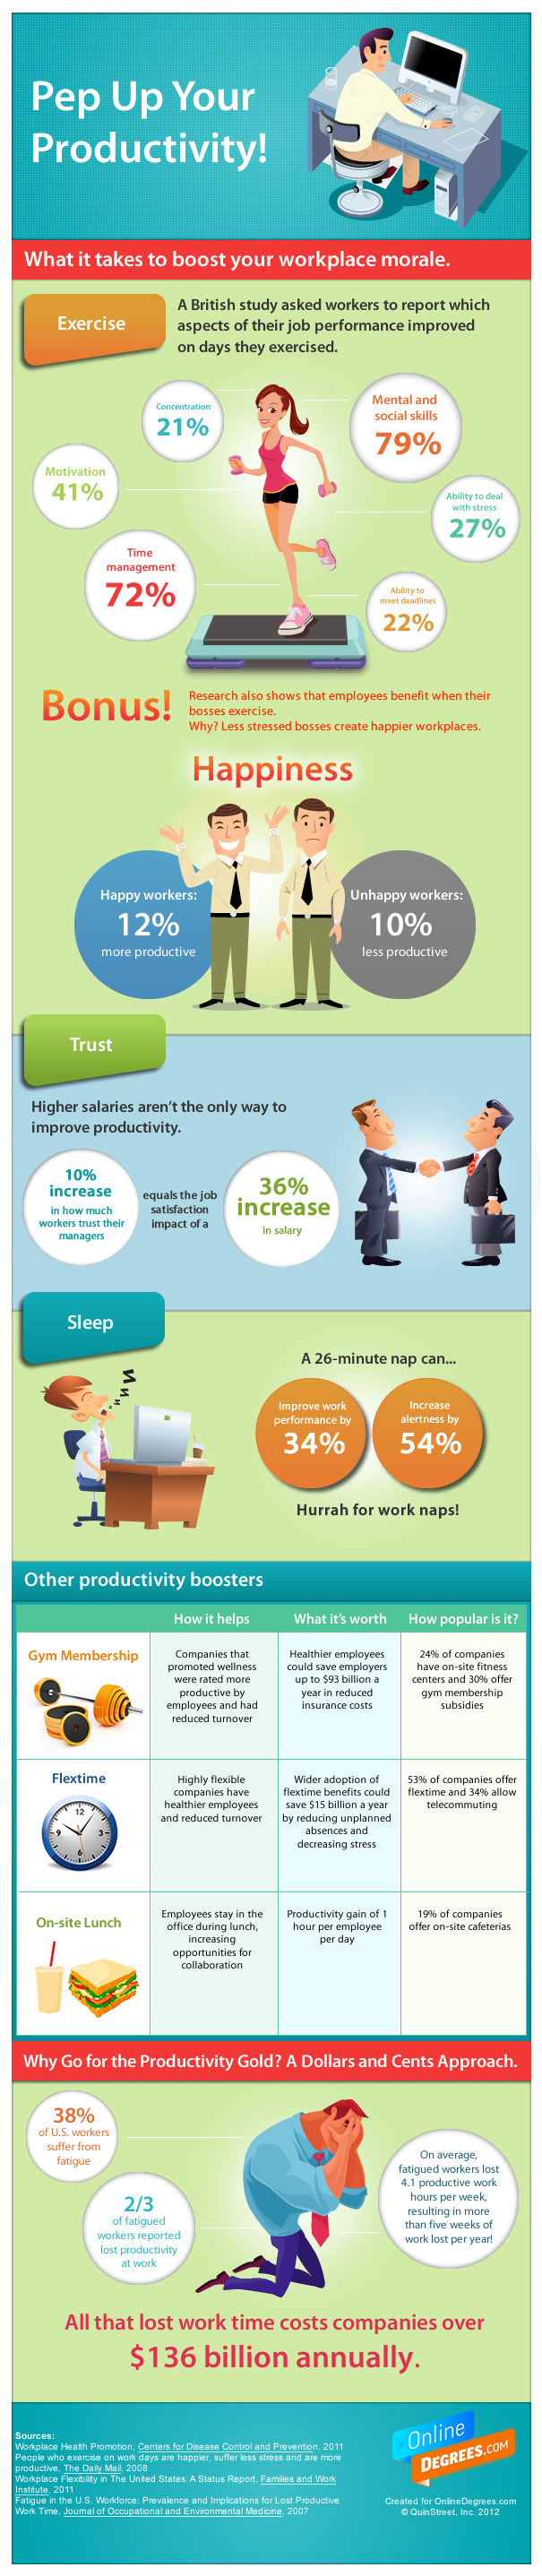 Pep-Up-Your-Productivity-infographic